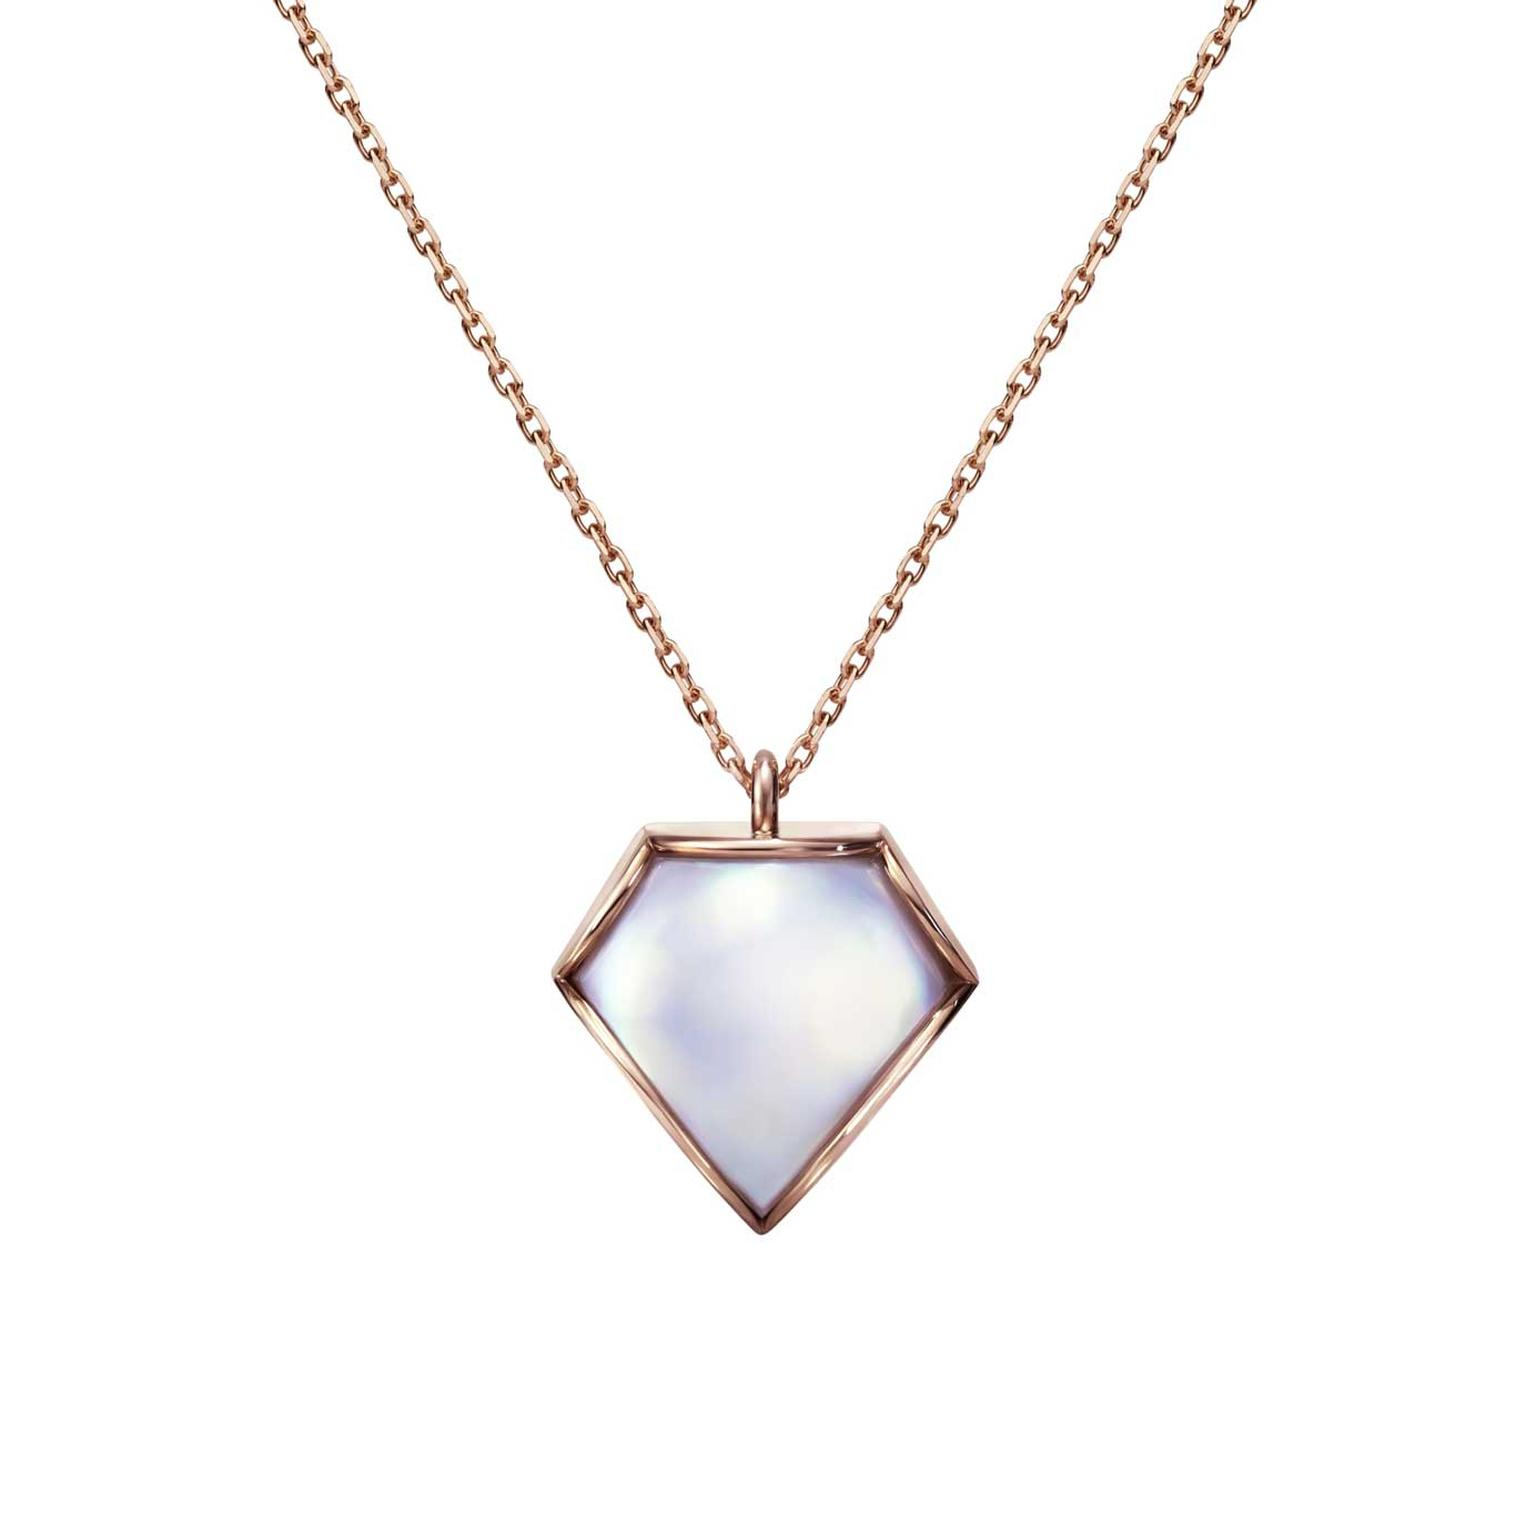 M/G Tasaki Sakura Gold Faceted pendant with mabe pearl